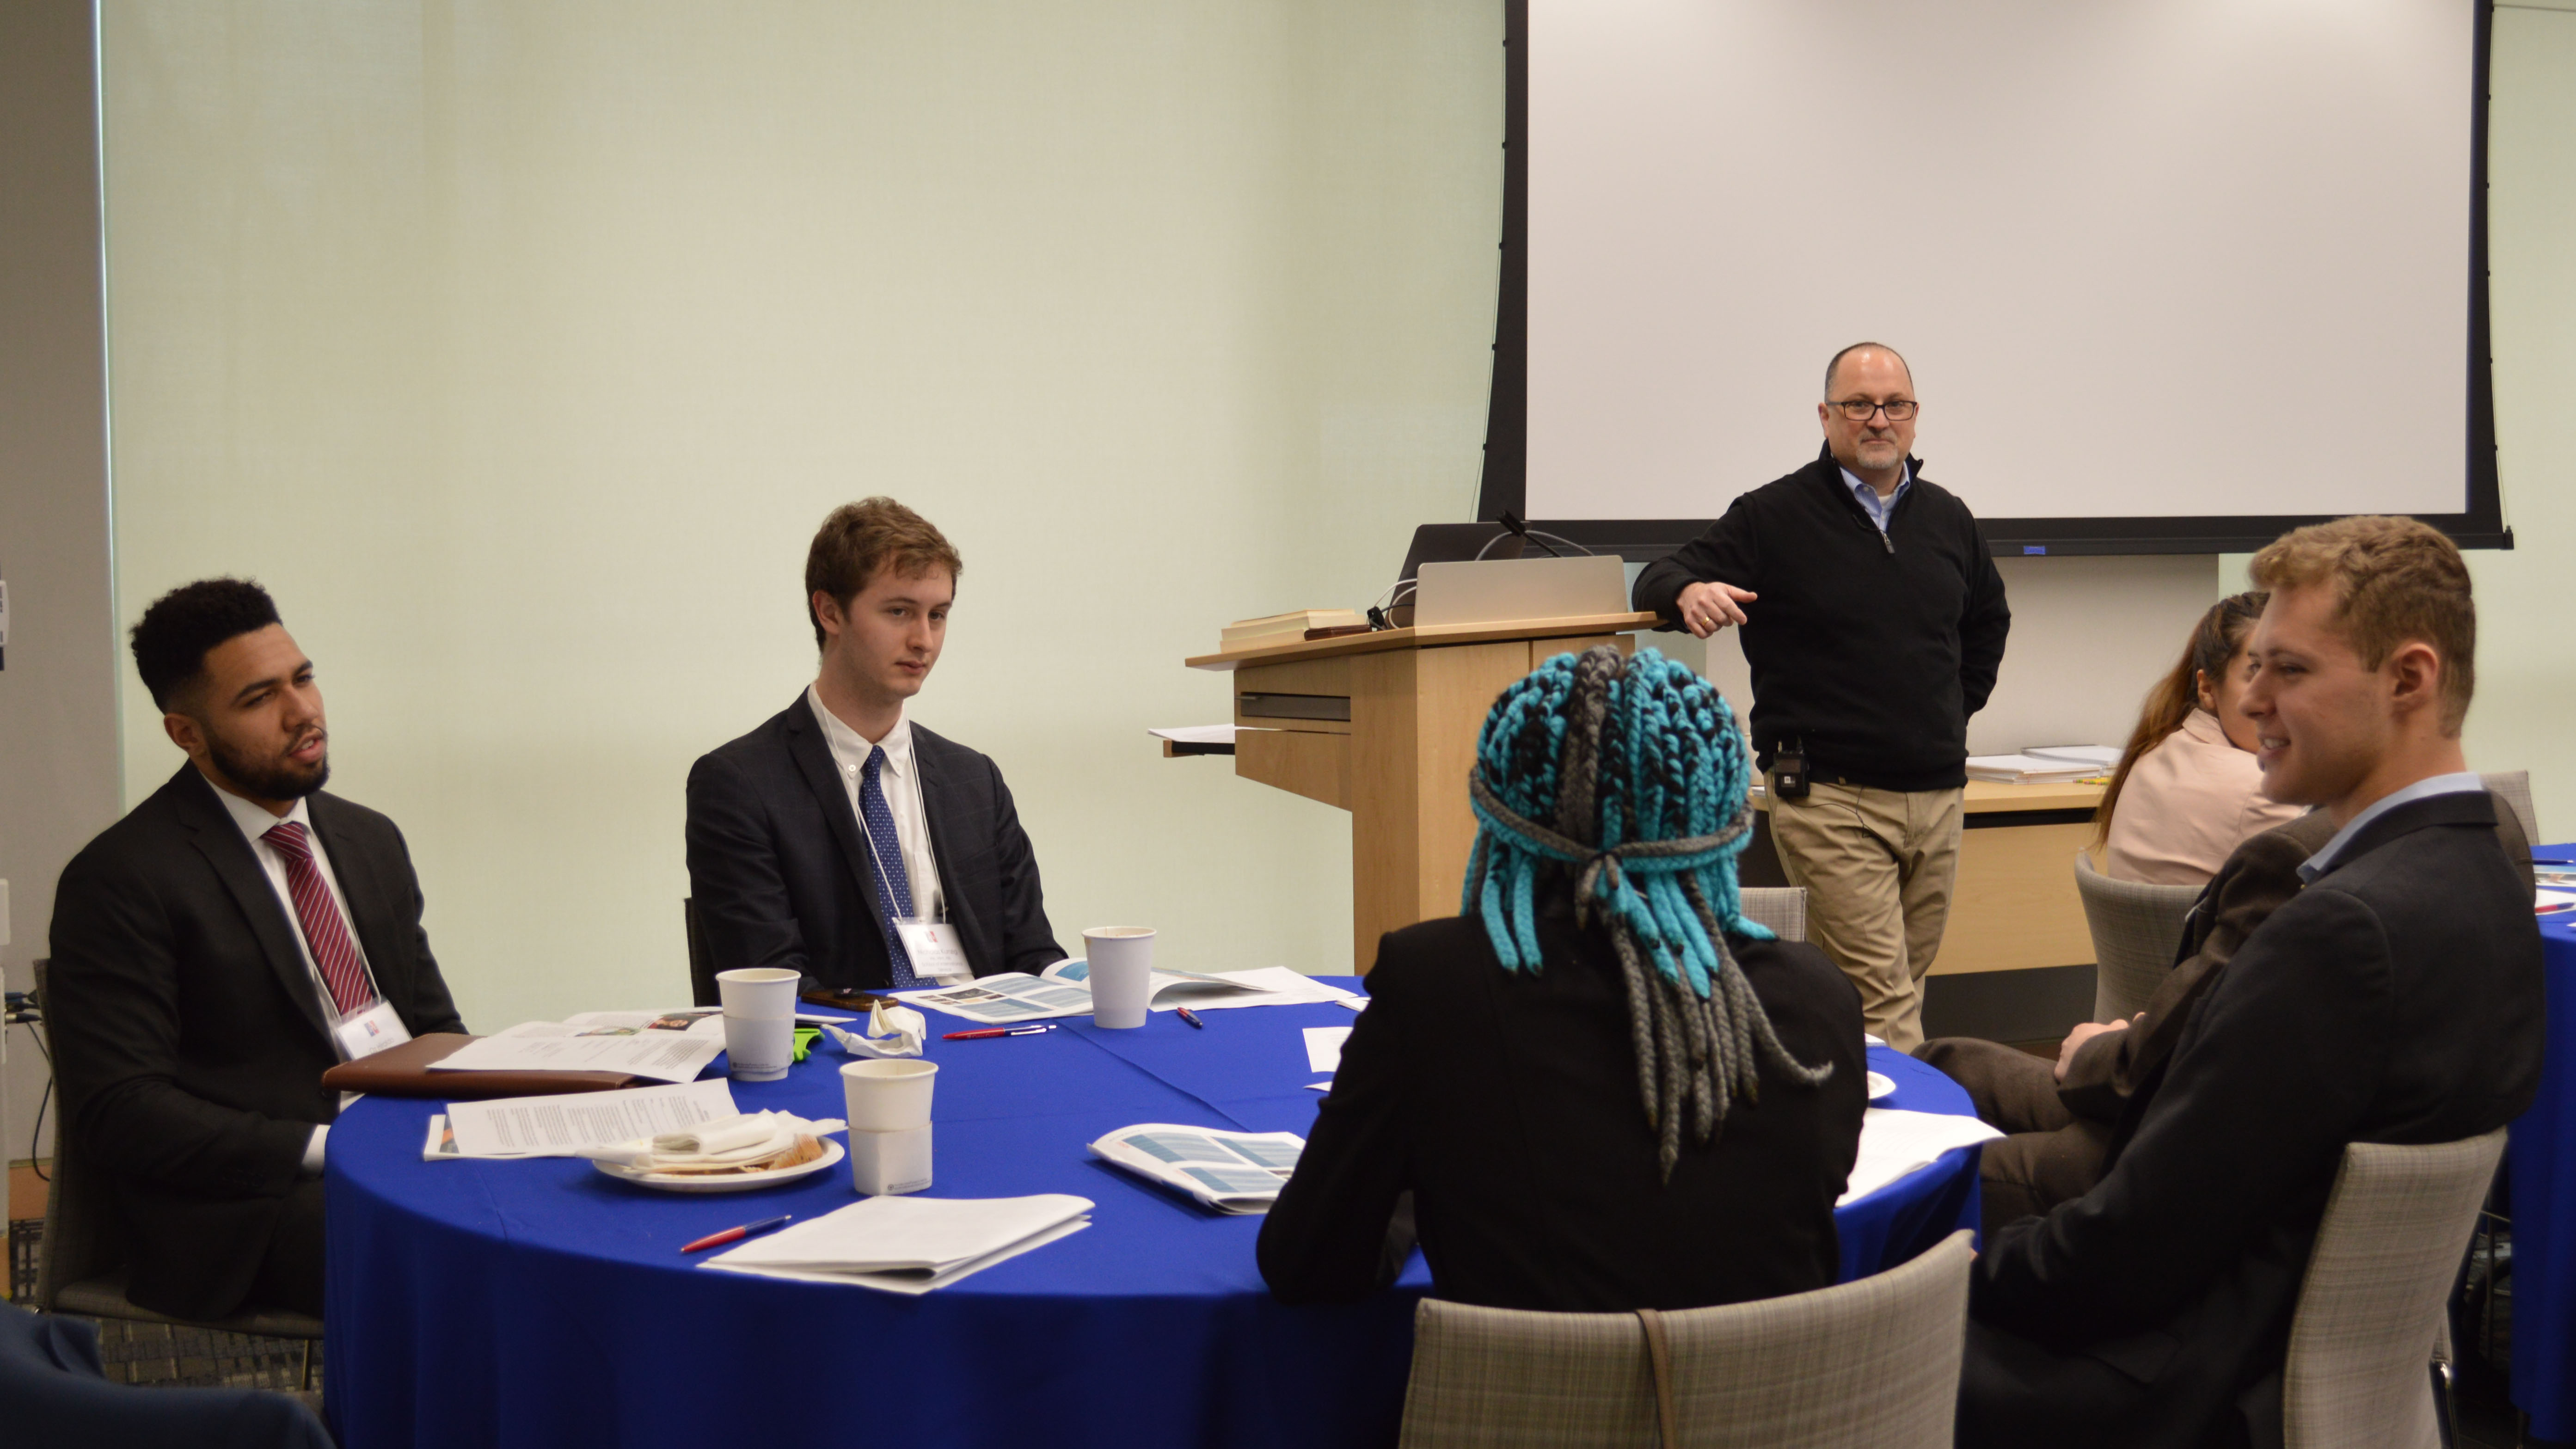 An employer speaks to students seated at a round table